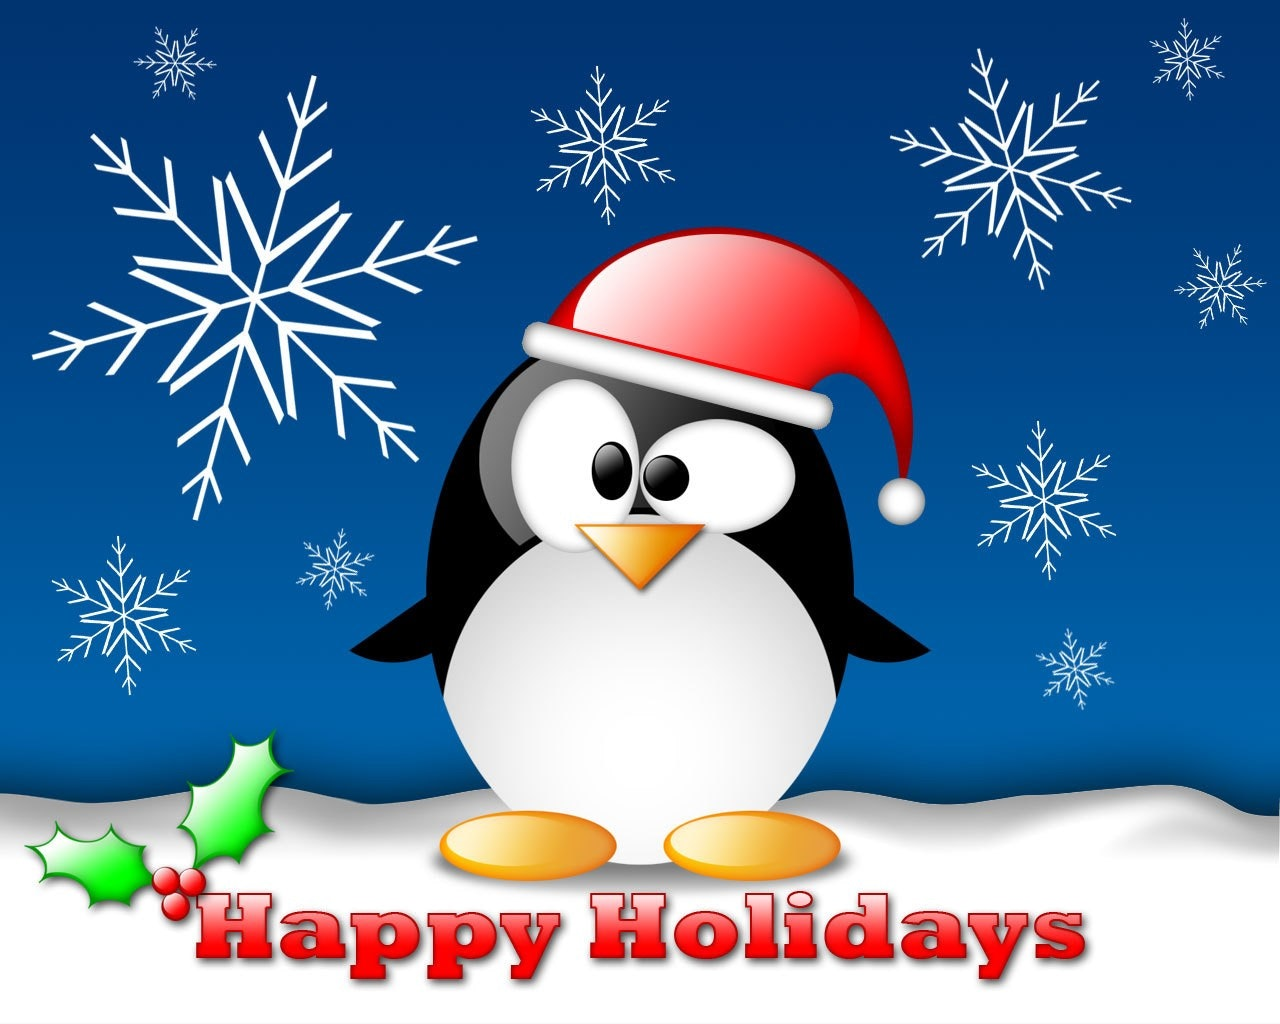 Cartoon penguin outdoors in snow with Happy Holidays greeting